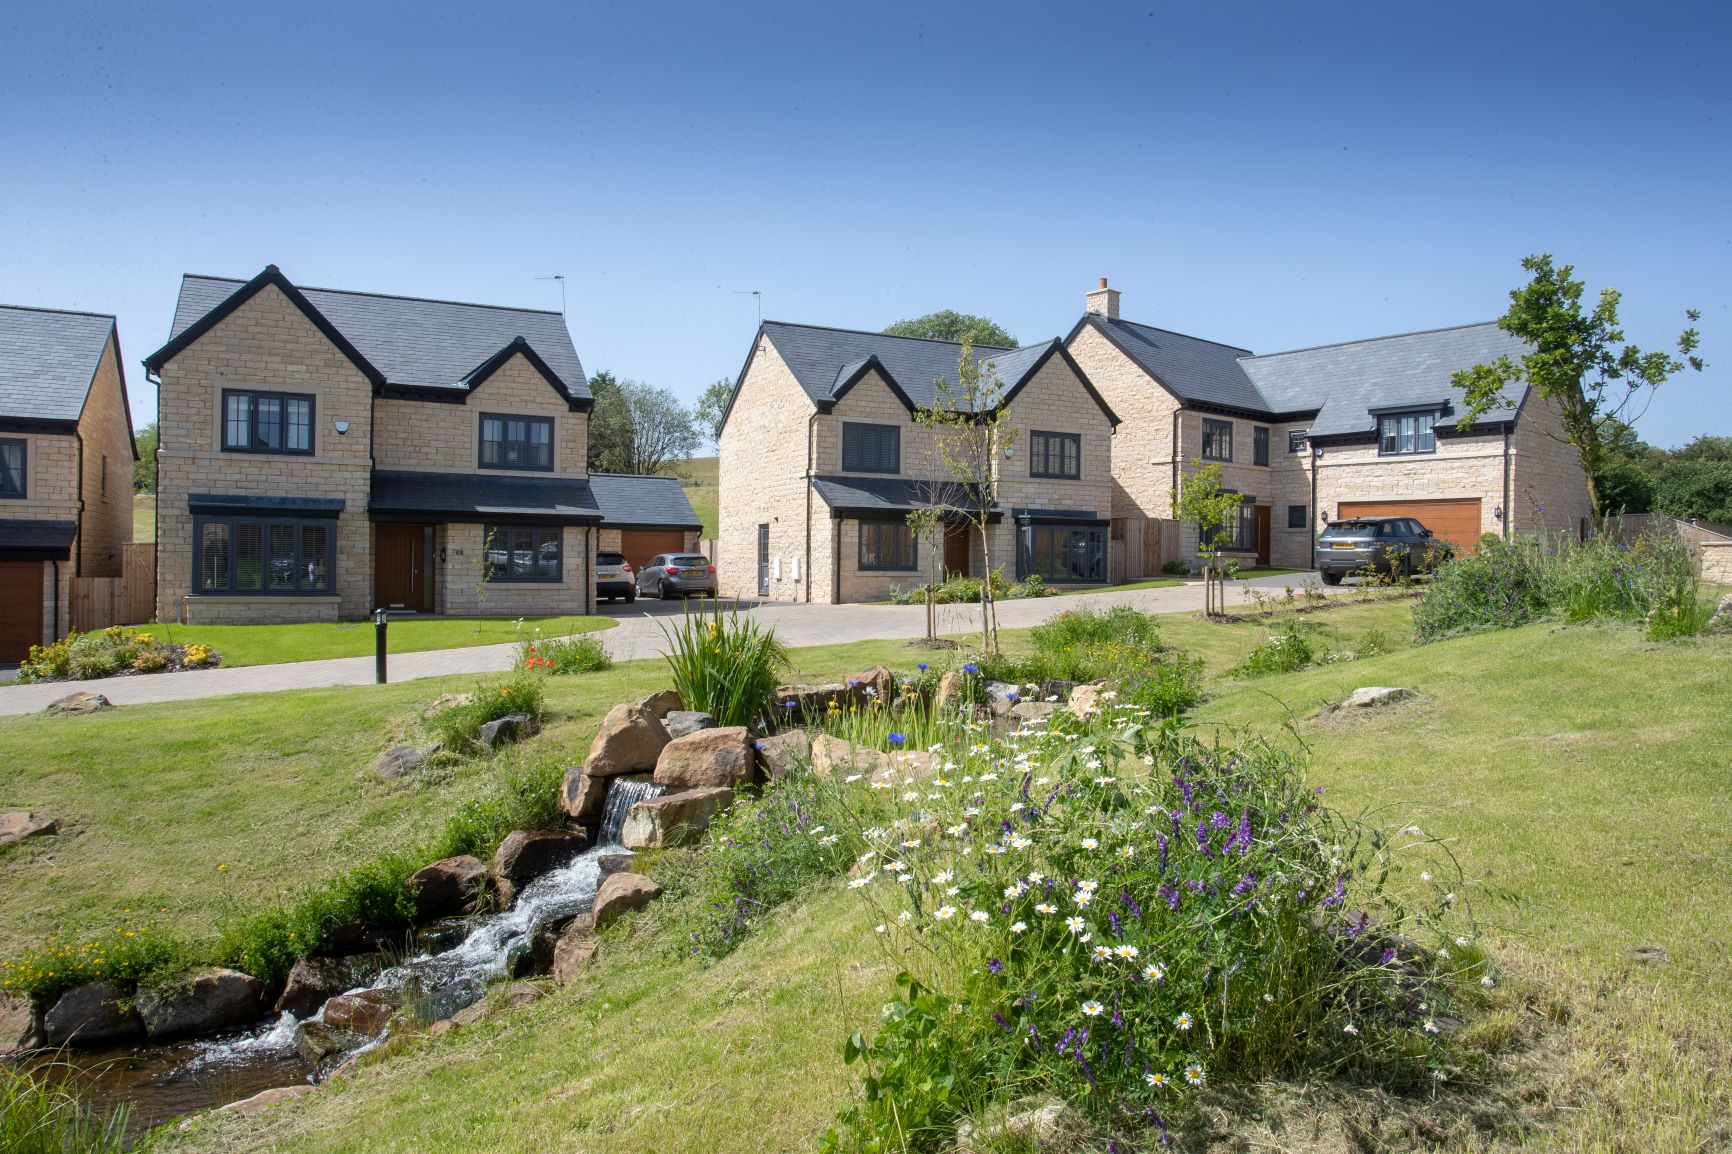 Greenbooth Village is beautifully landscaped5